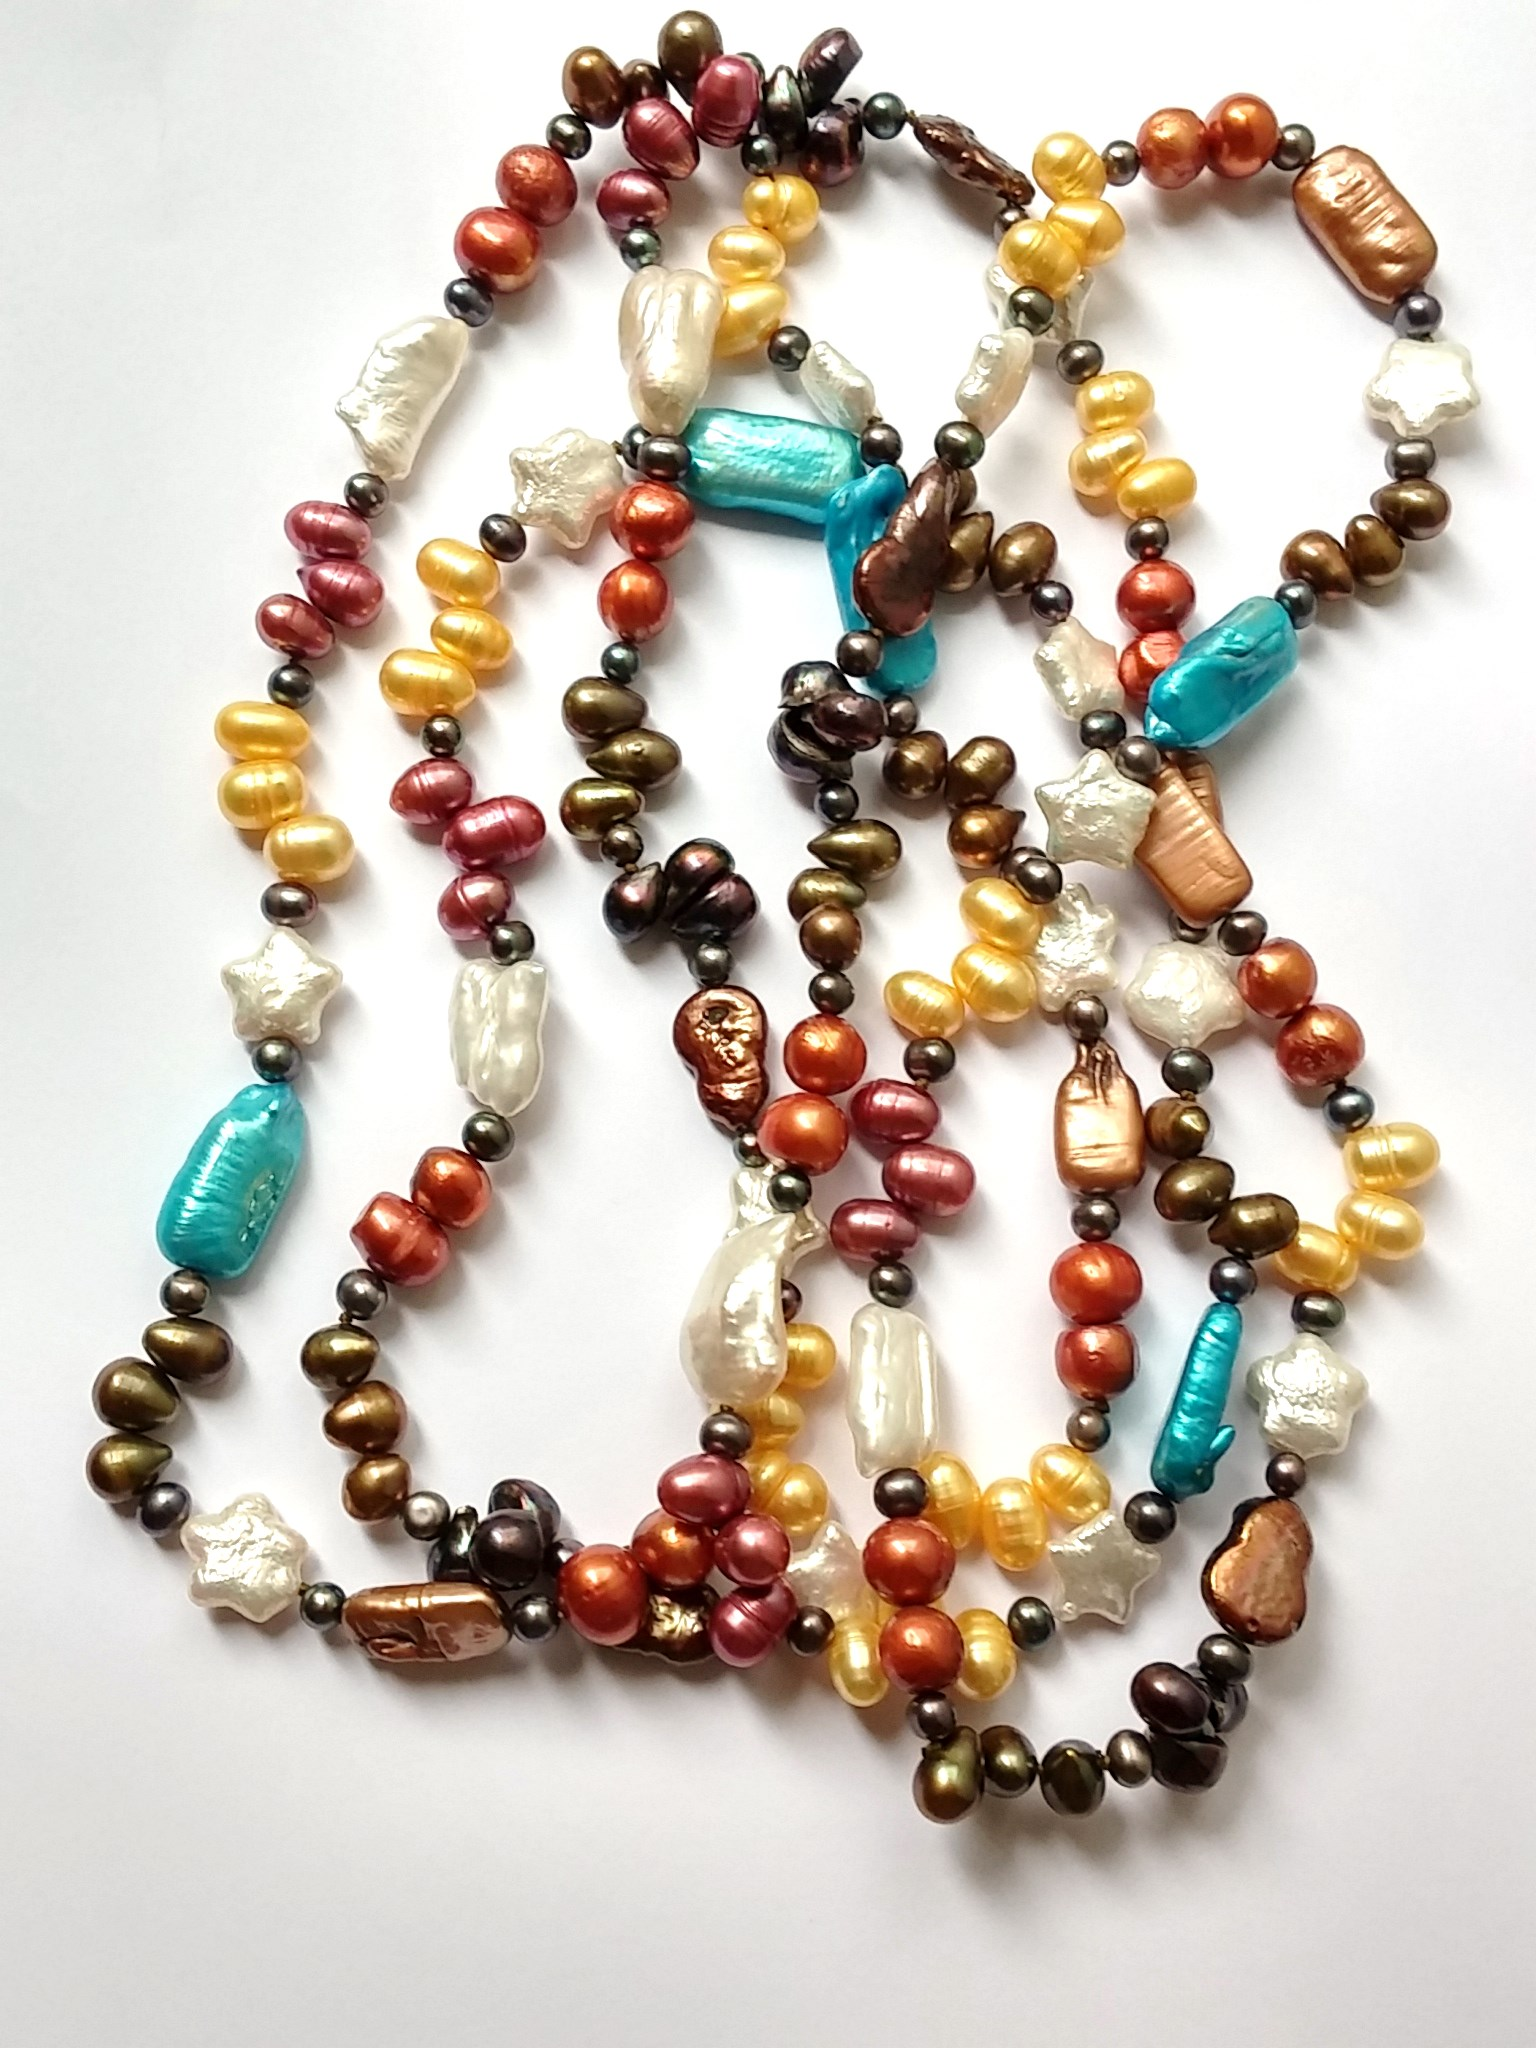 Lovely Freshwater Pearl Necklace in Mixed Colors and Shapes